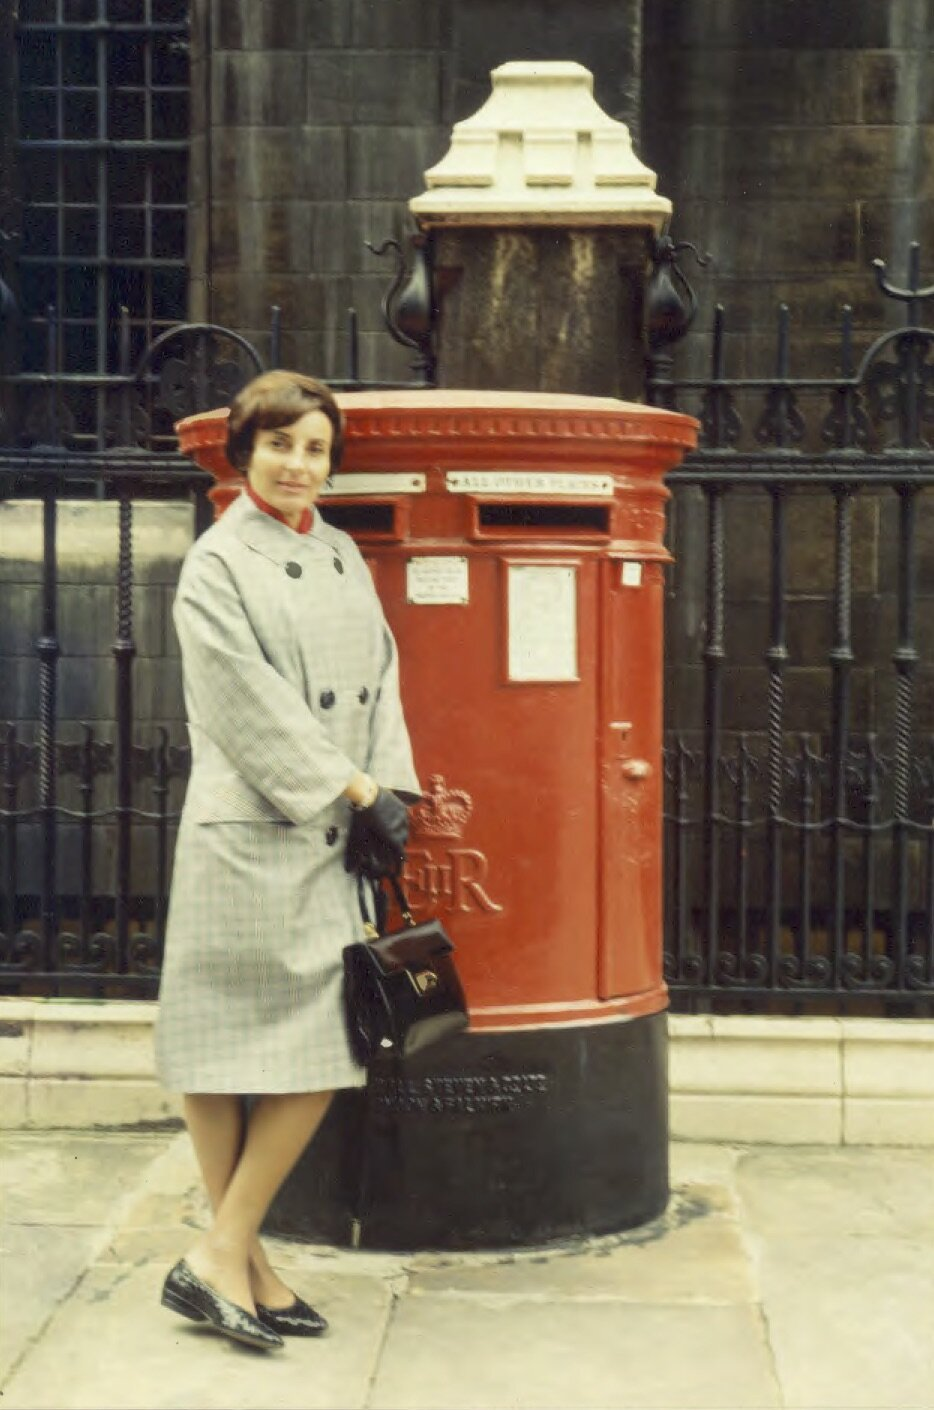 A debonair Dorrit in London, July, 1965, posing for a portrait by her fourteen year old son, at the start of her first trip to Europe since the war, and my first ever. It was on this trip, during which we also visited The Hague and the Franks' former hiding place, that I began to understand and appreciate my mother's background, as well as my own.